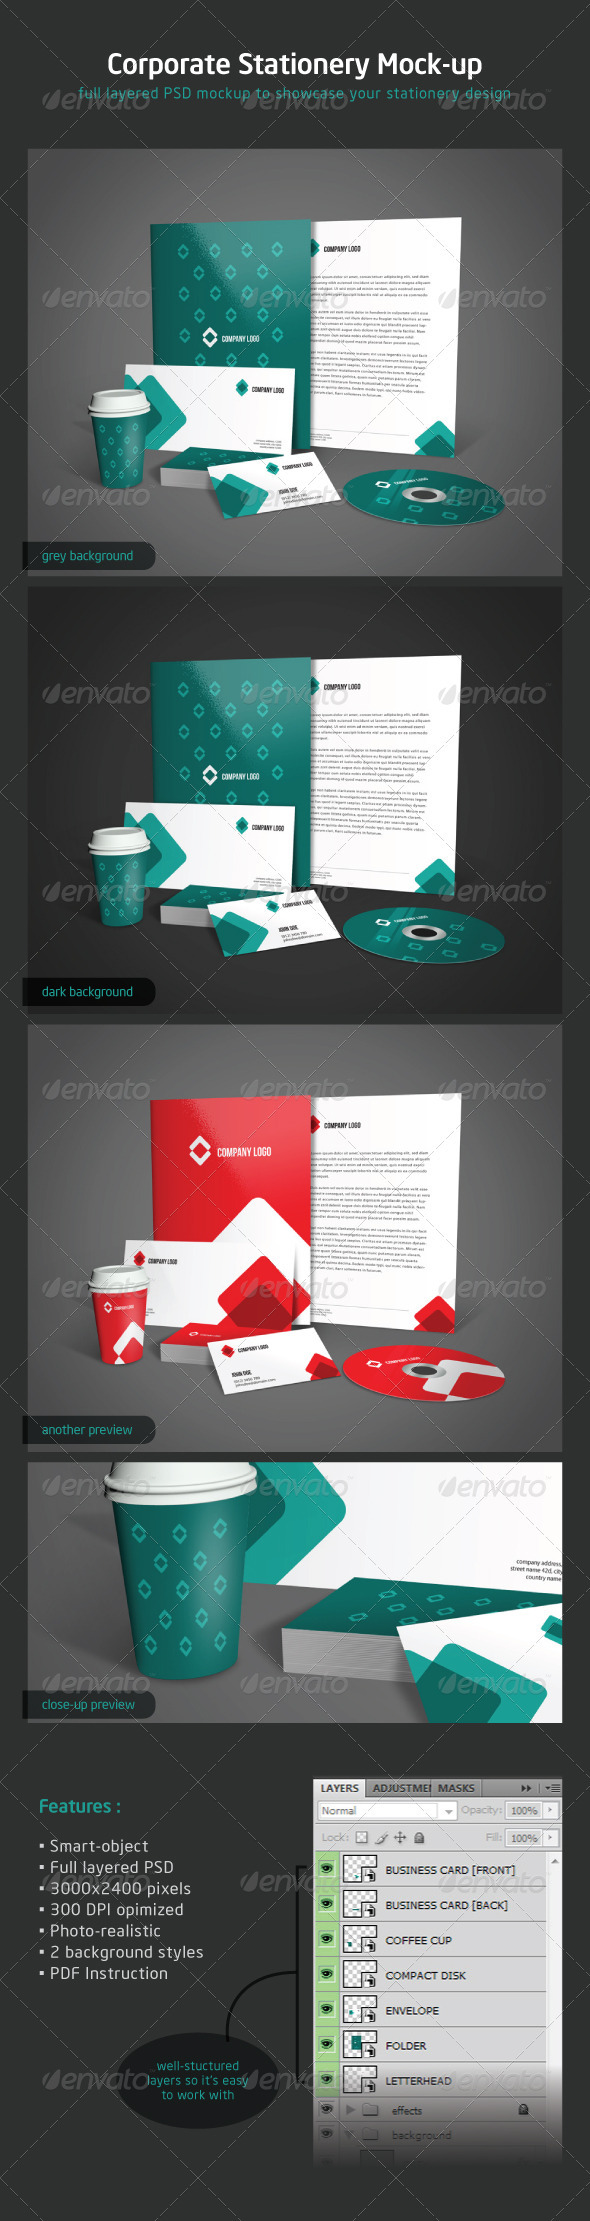 GraphicRiver Corporate Stationery Mock-up 2410703